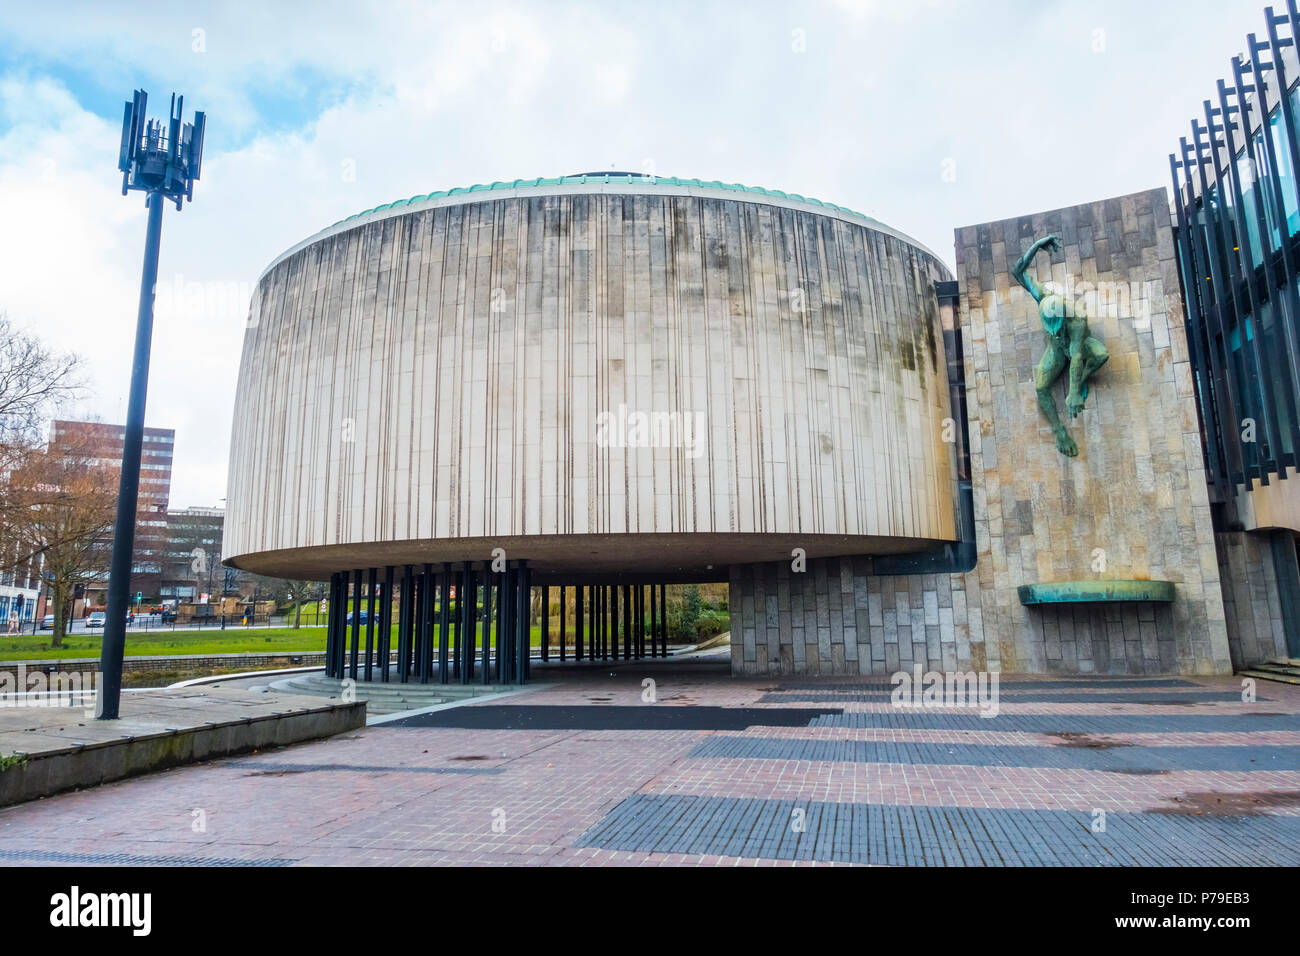 Newcastle upon Tyne Civic Centre designed by George Kenyon - Stock Image